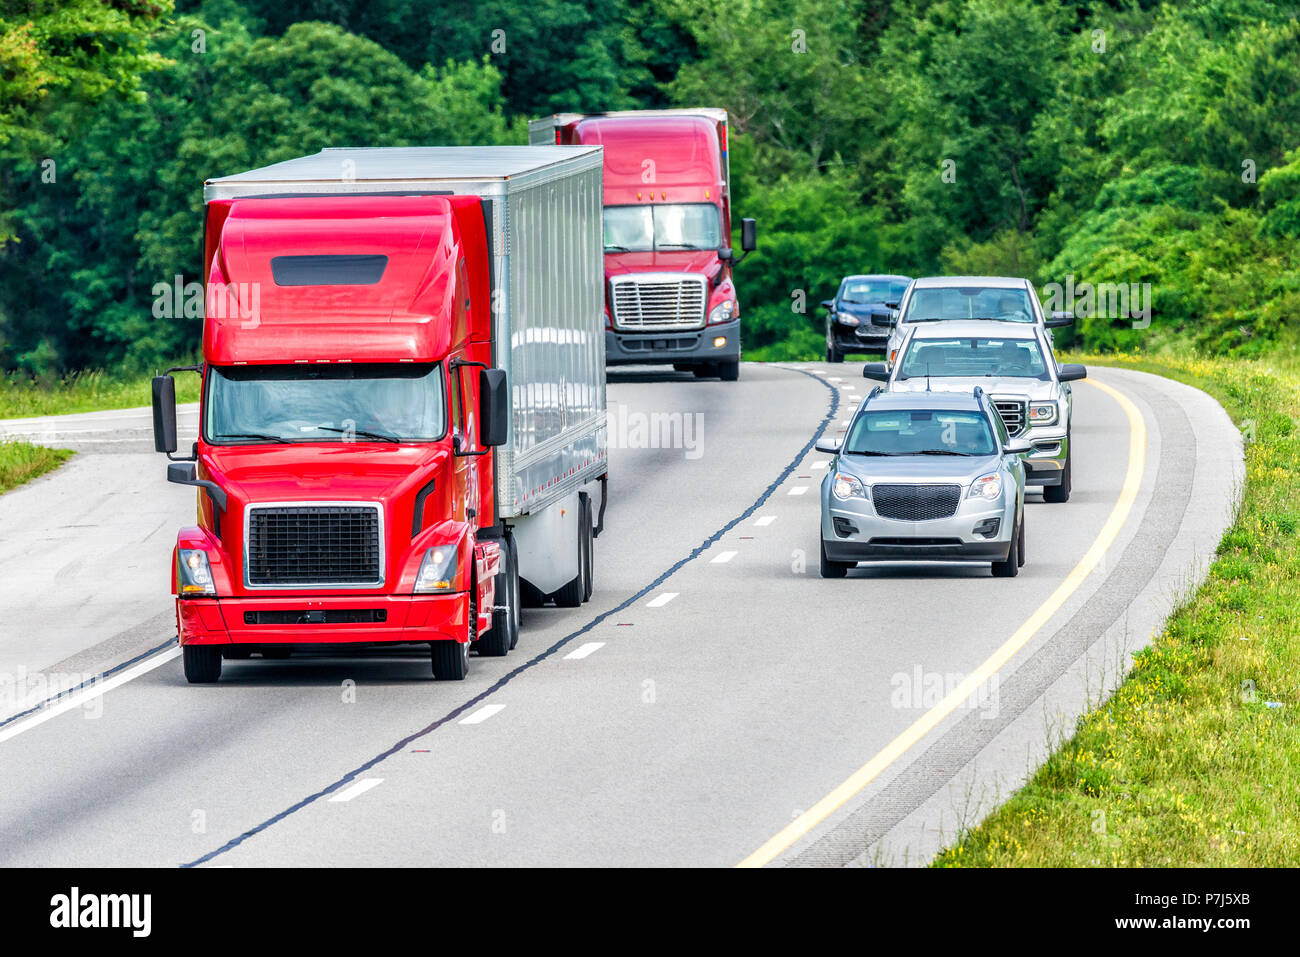 Two 18-wheelers and several passenger vehicles travel down an interstate.  Note: All logos and identifying marks have been removed from all vehicles.  - Stock Image